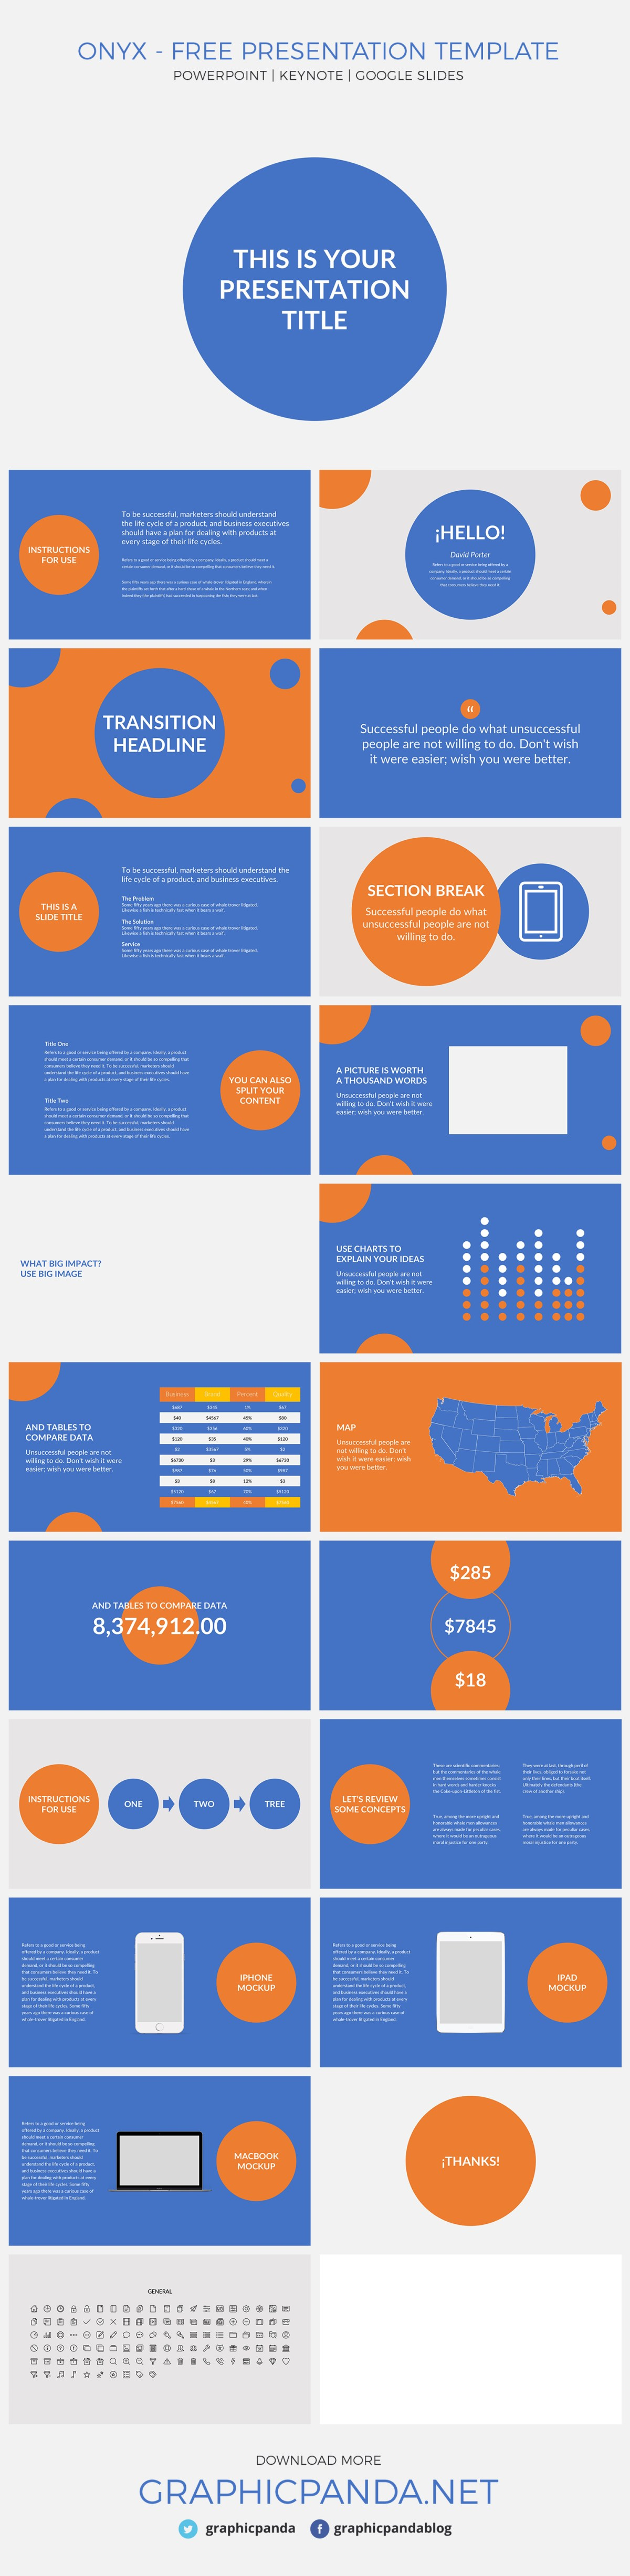 The Onyx Template is a great option when you're trying to present a business presentation to your company. The Onyx Template can be used as a Google Slides, Keynote, and Powerpoint presentation. Based on a bicolor background setting, blue and orange, Onyx Template will help you persuade your audience with its 22 business slides. In addition, the editable charts will help you plasm your ideas on them in order to portray the idea you want to leave in your audience. Onyx Template is the best free presentation you can get to present your company, products, and services to others.